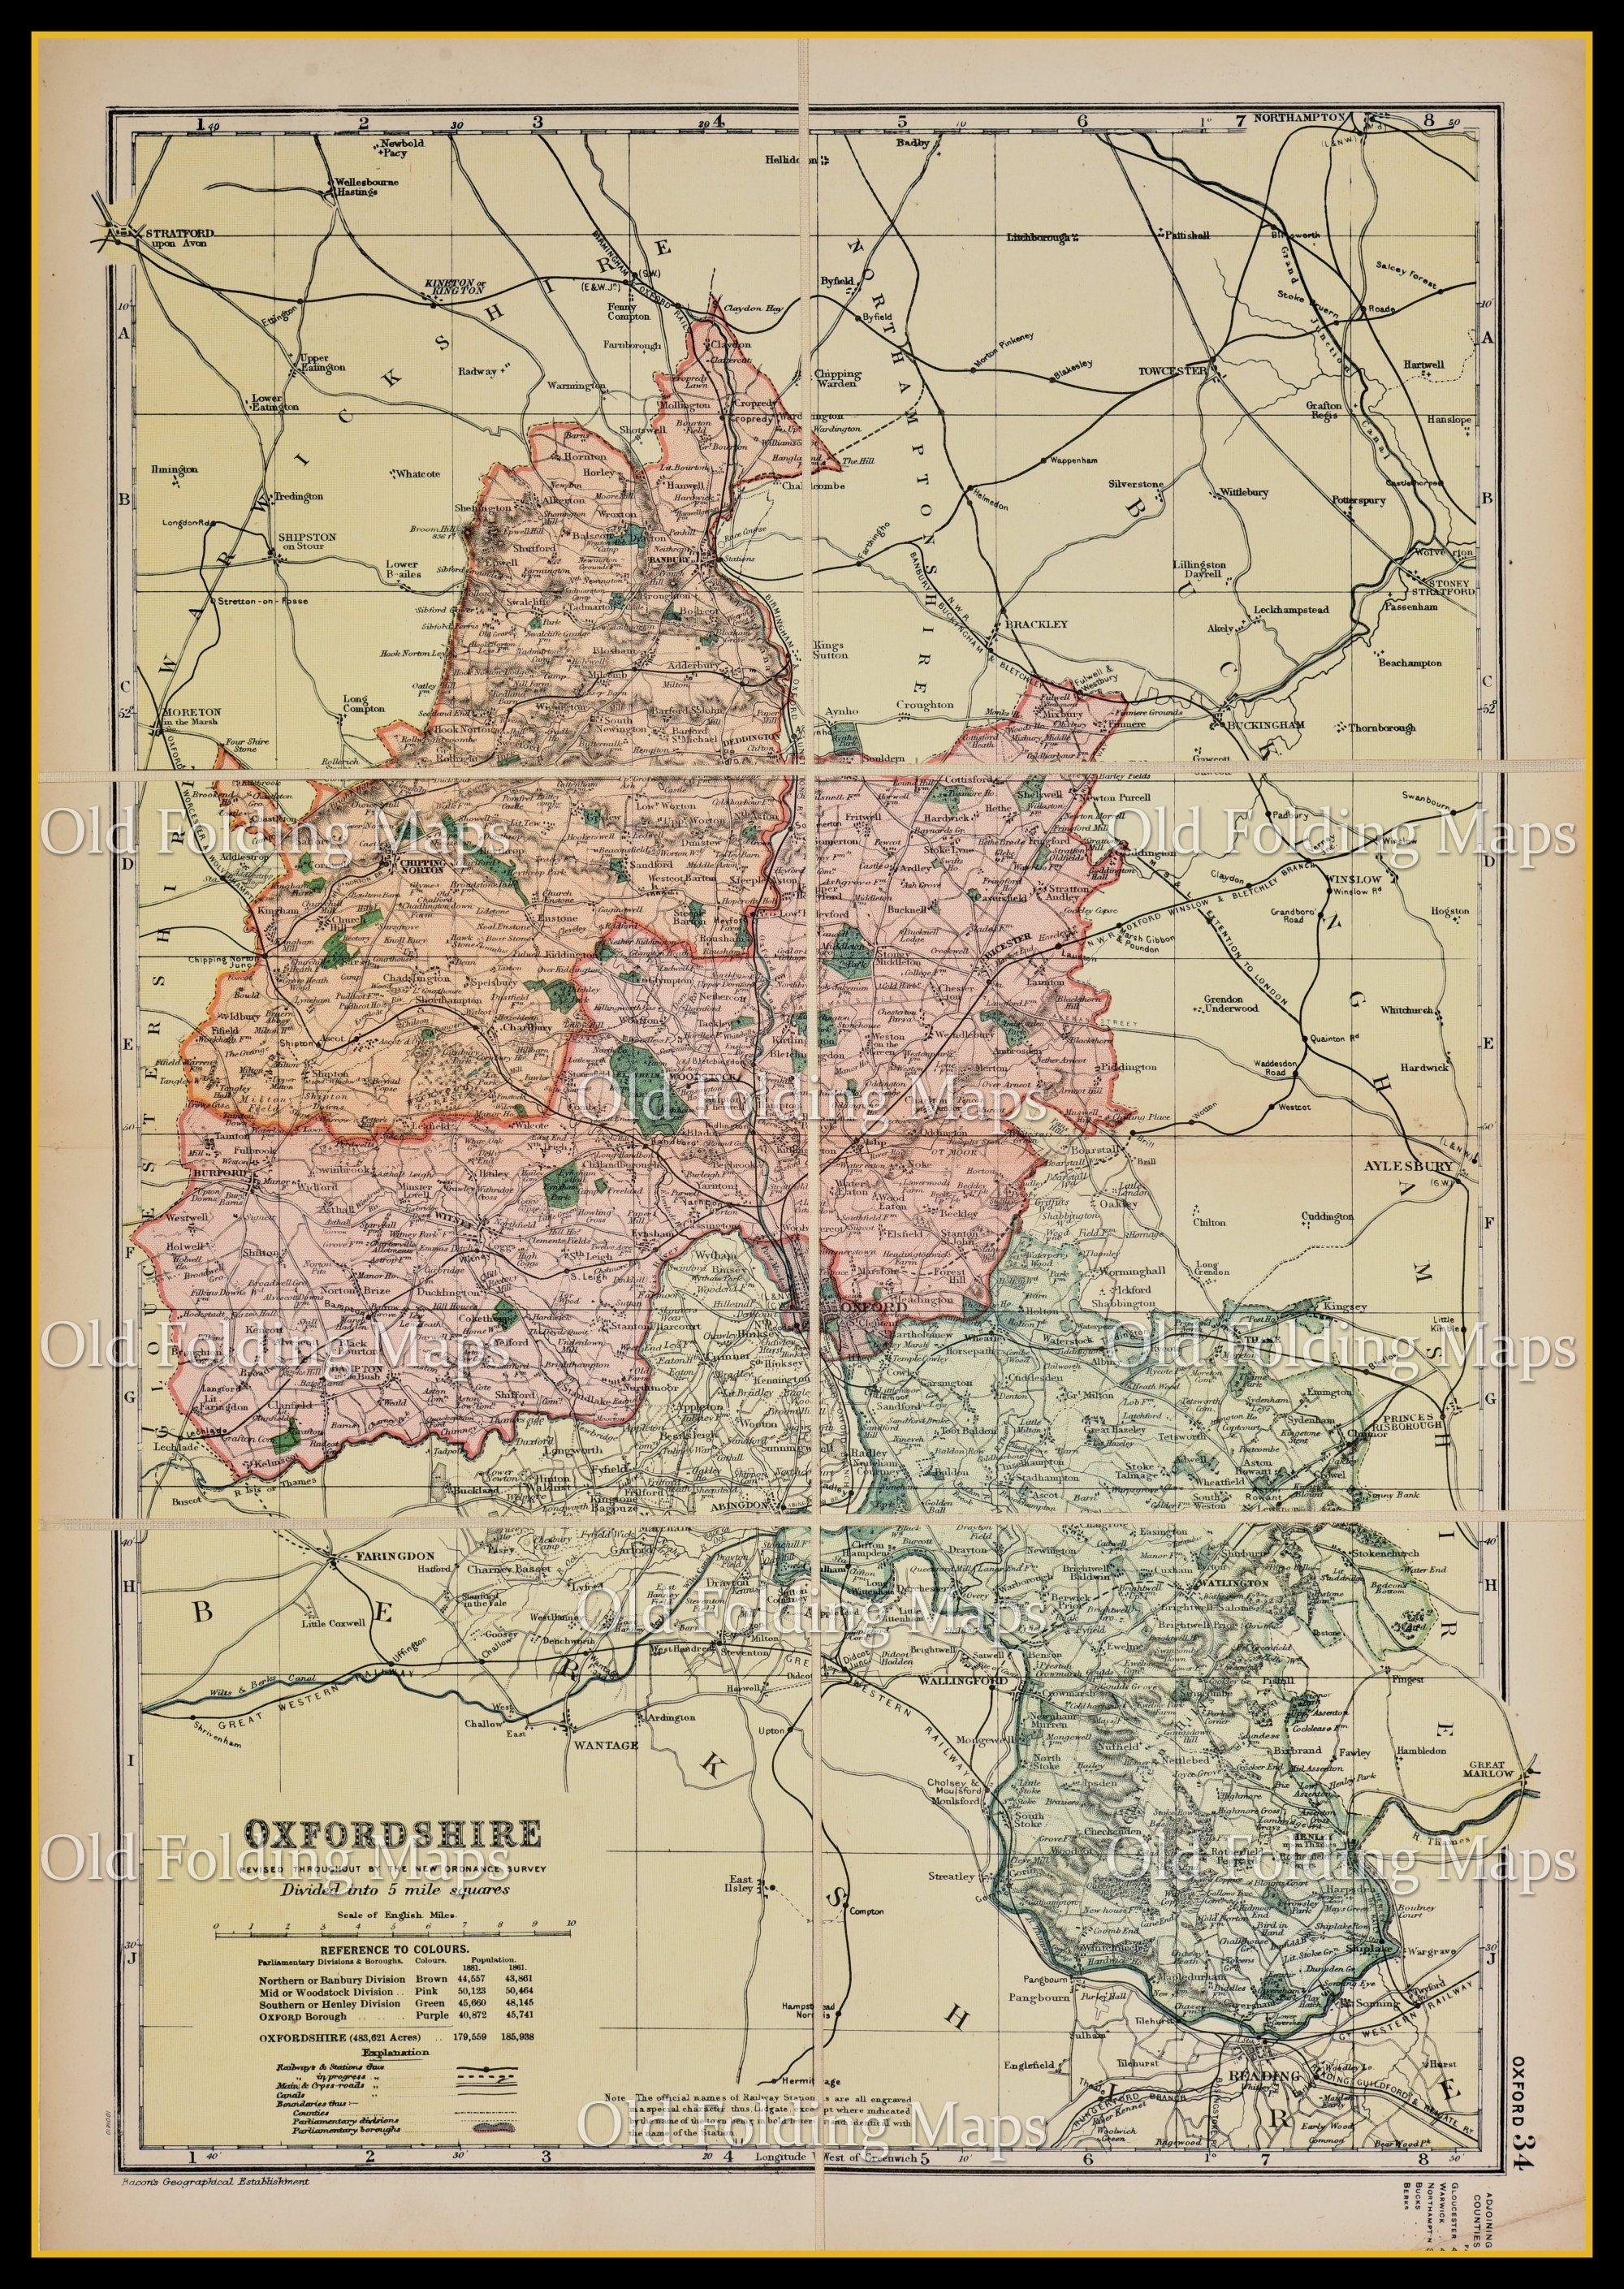 An Antique Map of Oxfordshire